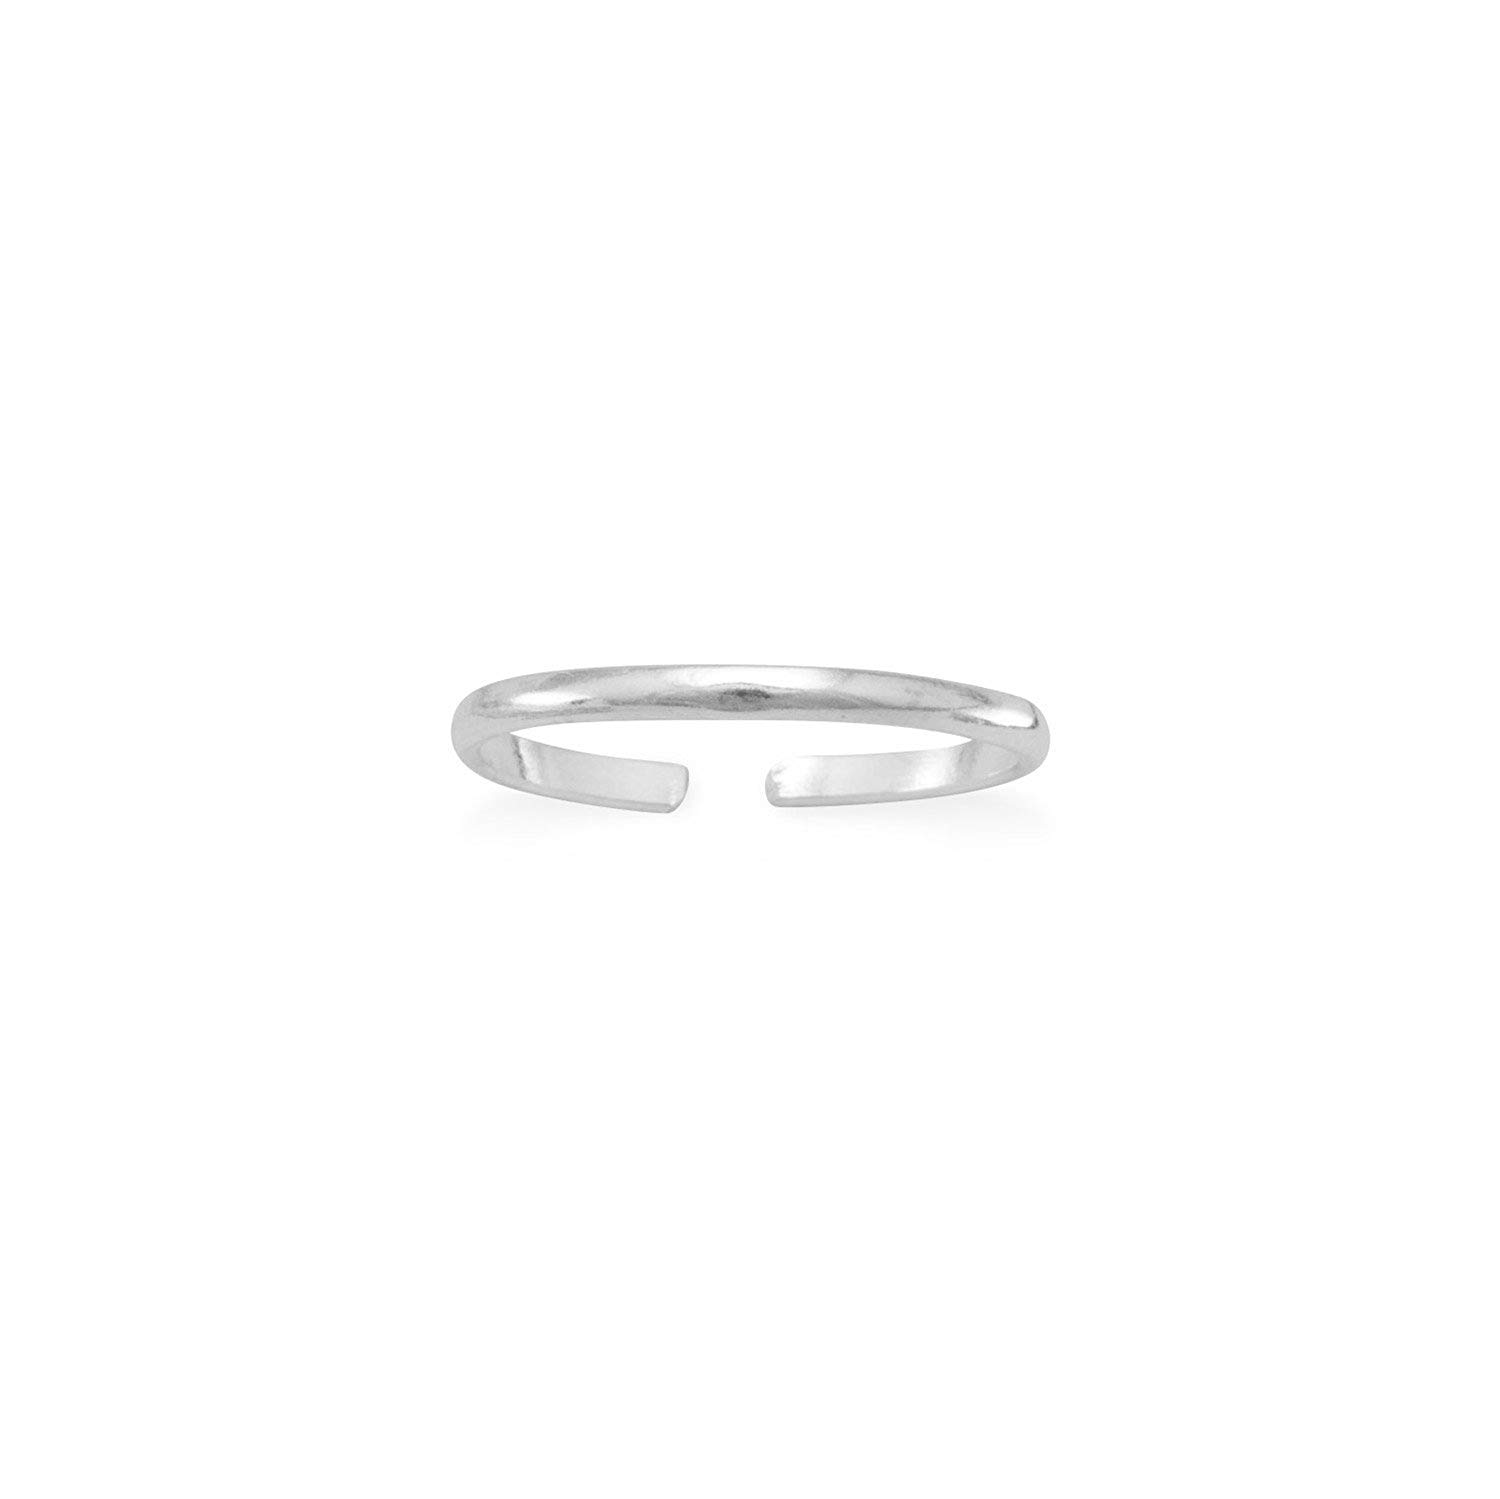 Solid 925 Sterling Silver Stackable Expressions Marcasite Wedding Band 3mm